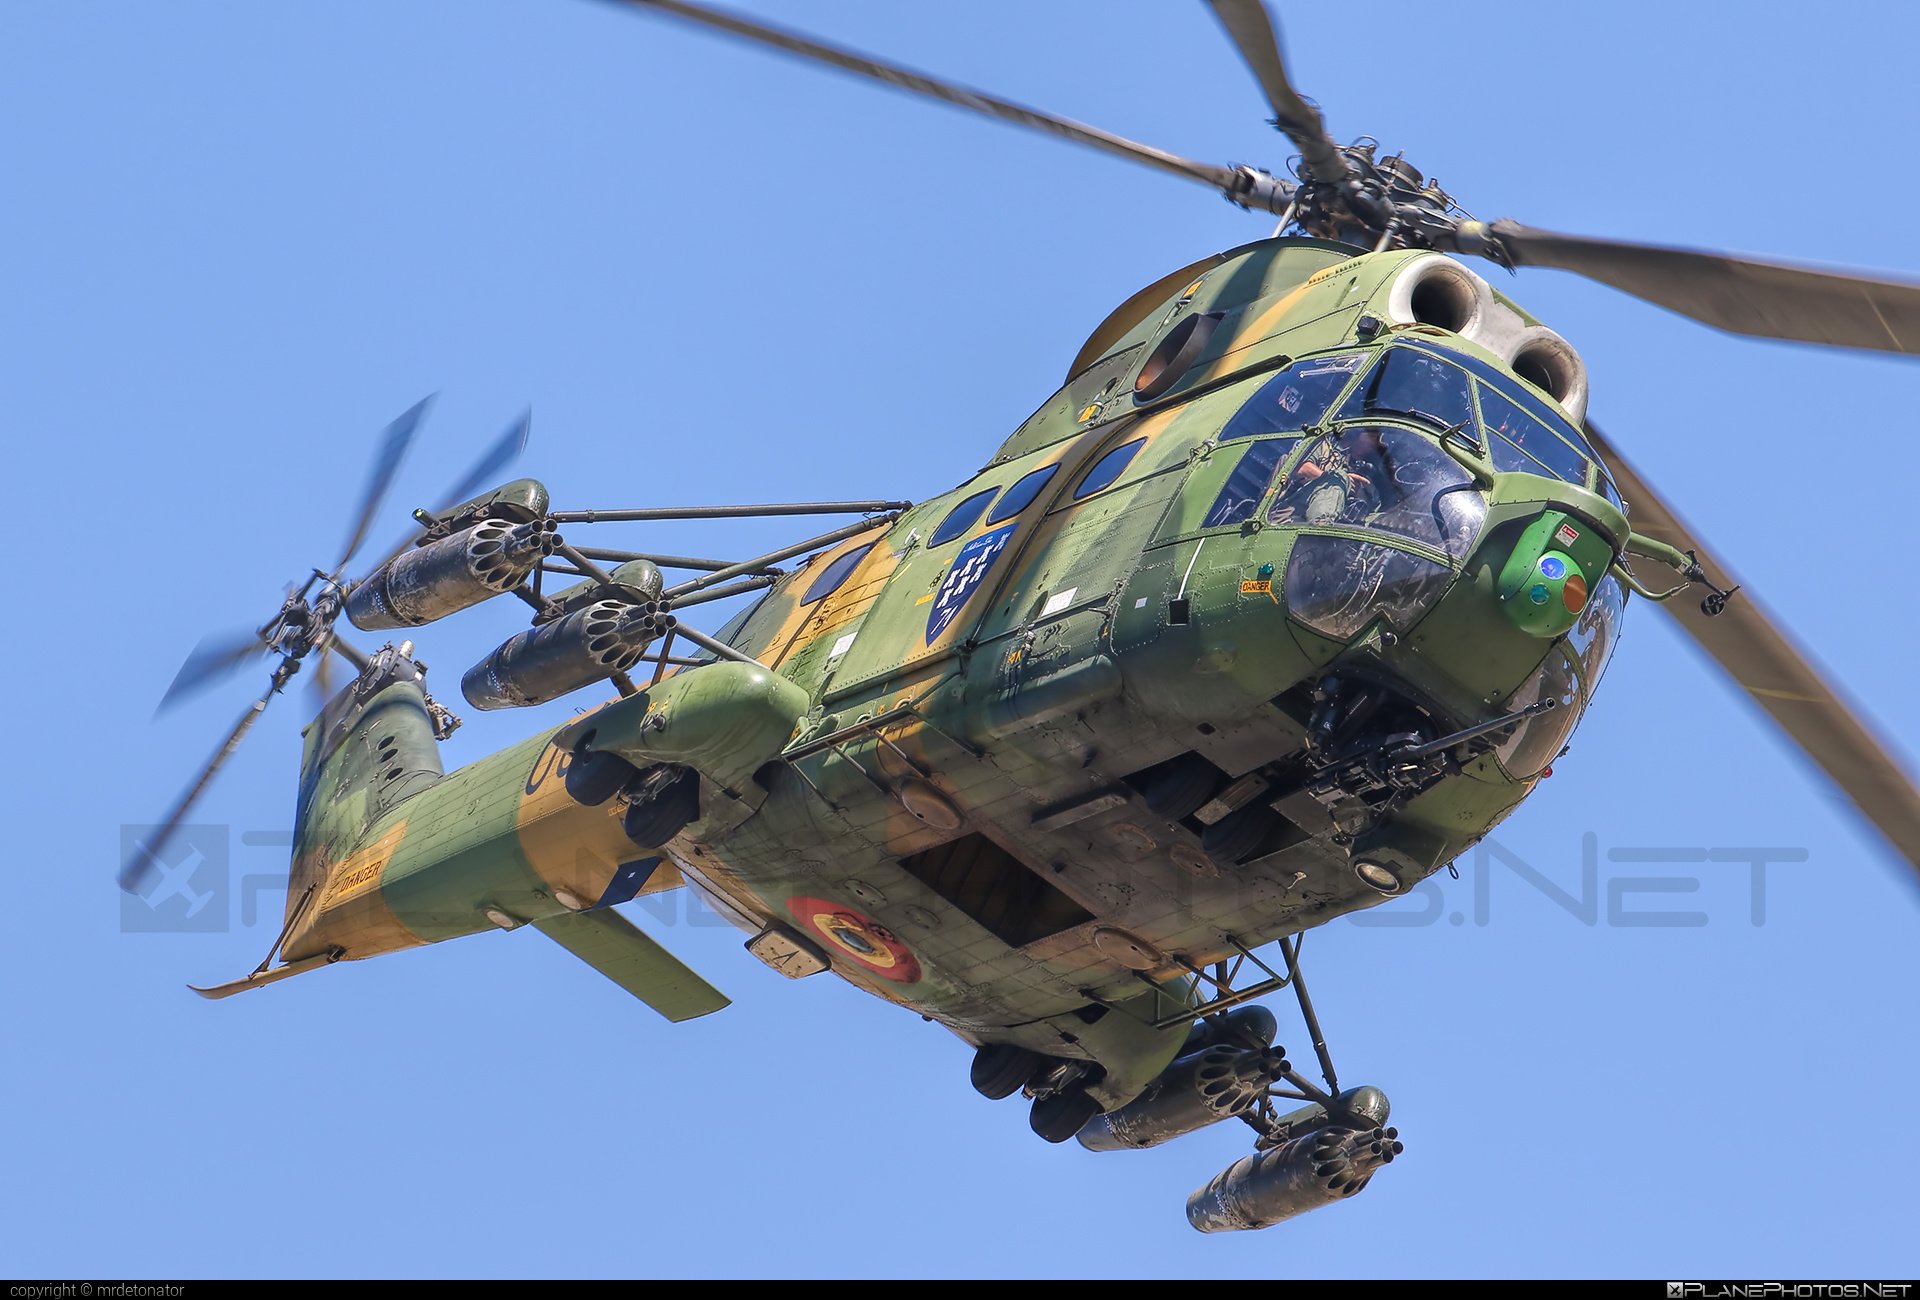 IAR IAR-330L Puma SOCAT - 63 operated by Forţele Aeriene Române (Romanian Air Force) #forteleaerieneromane #romanianairforce